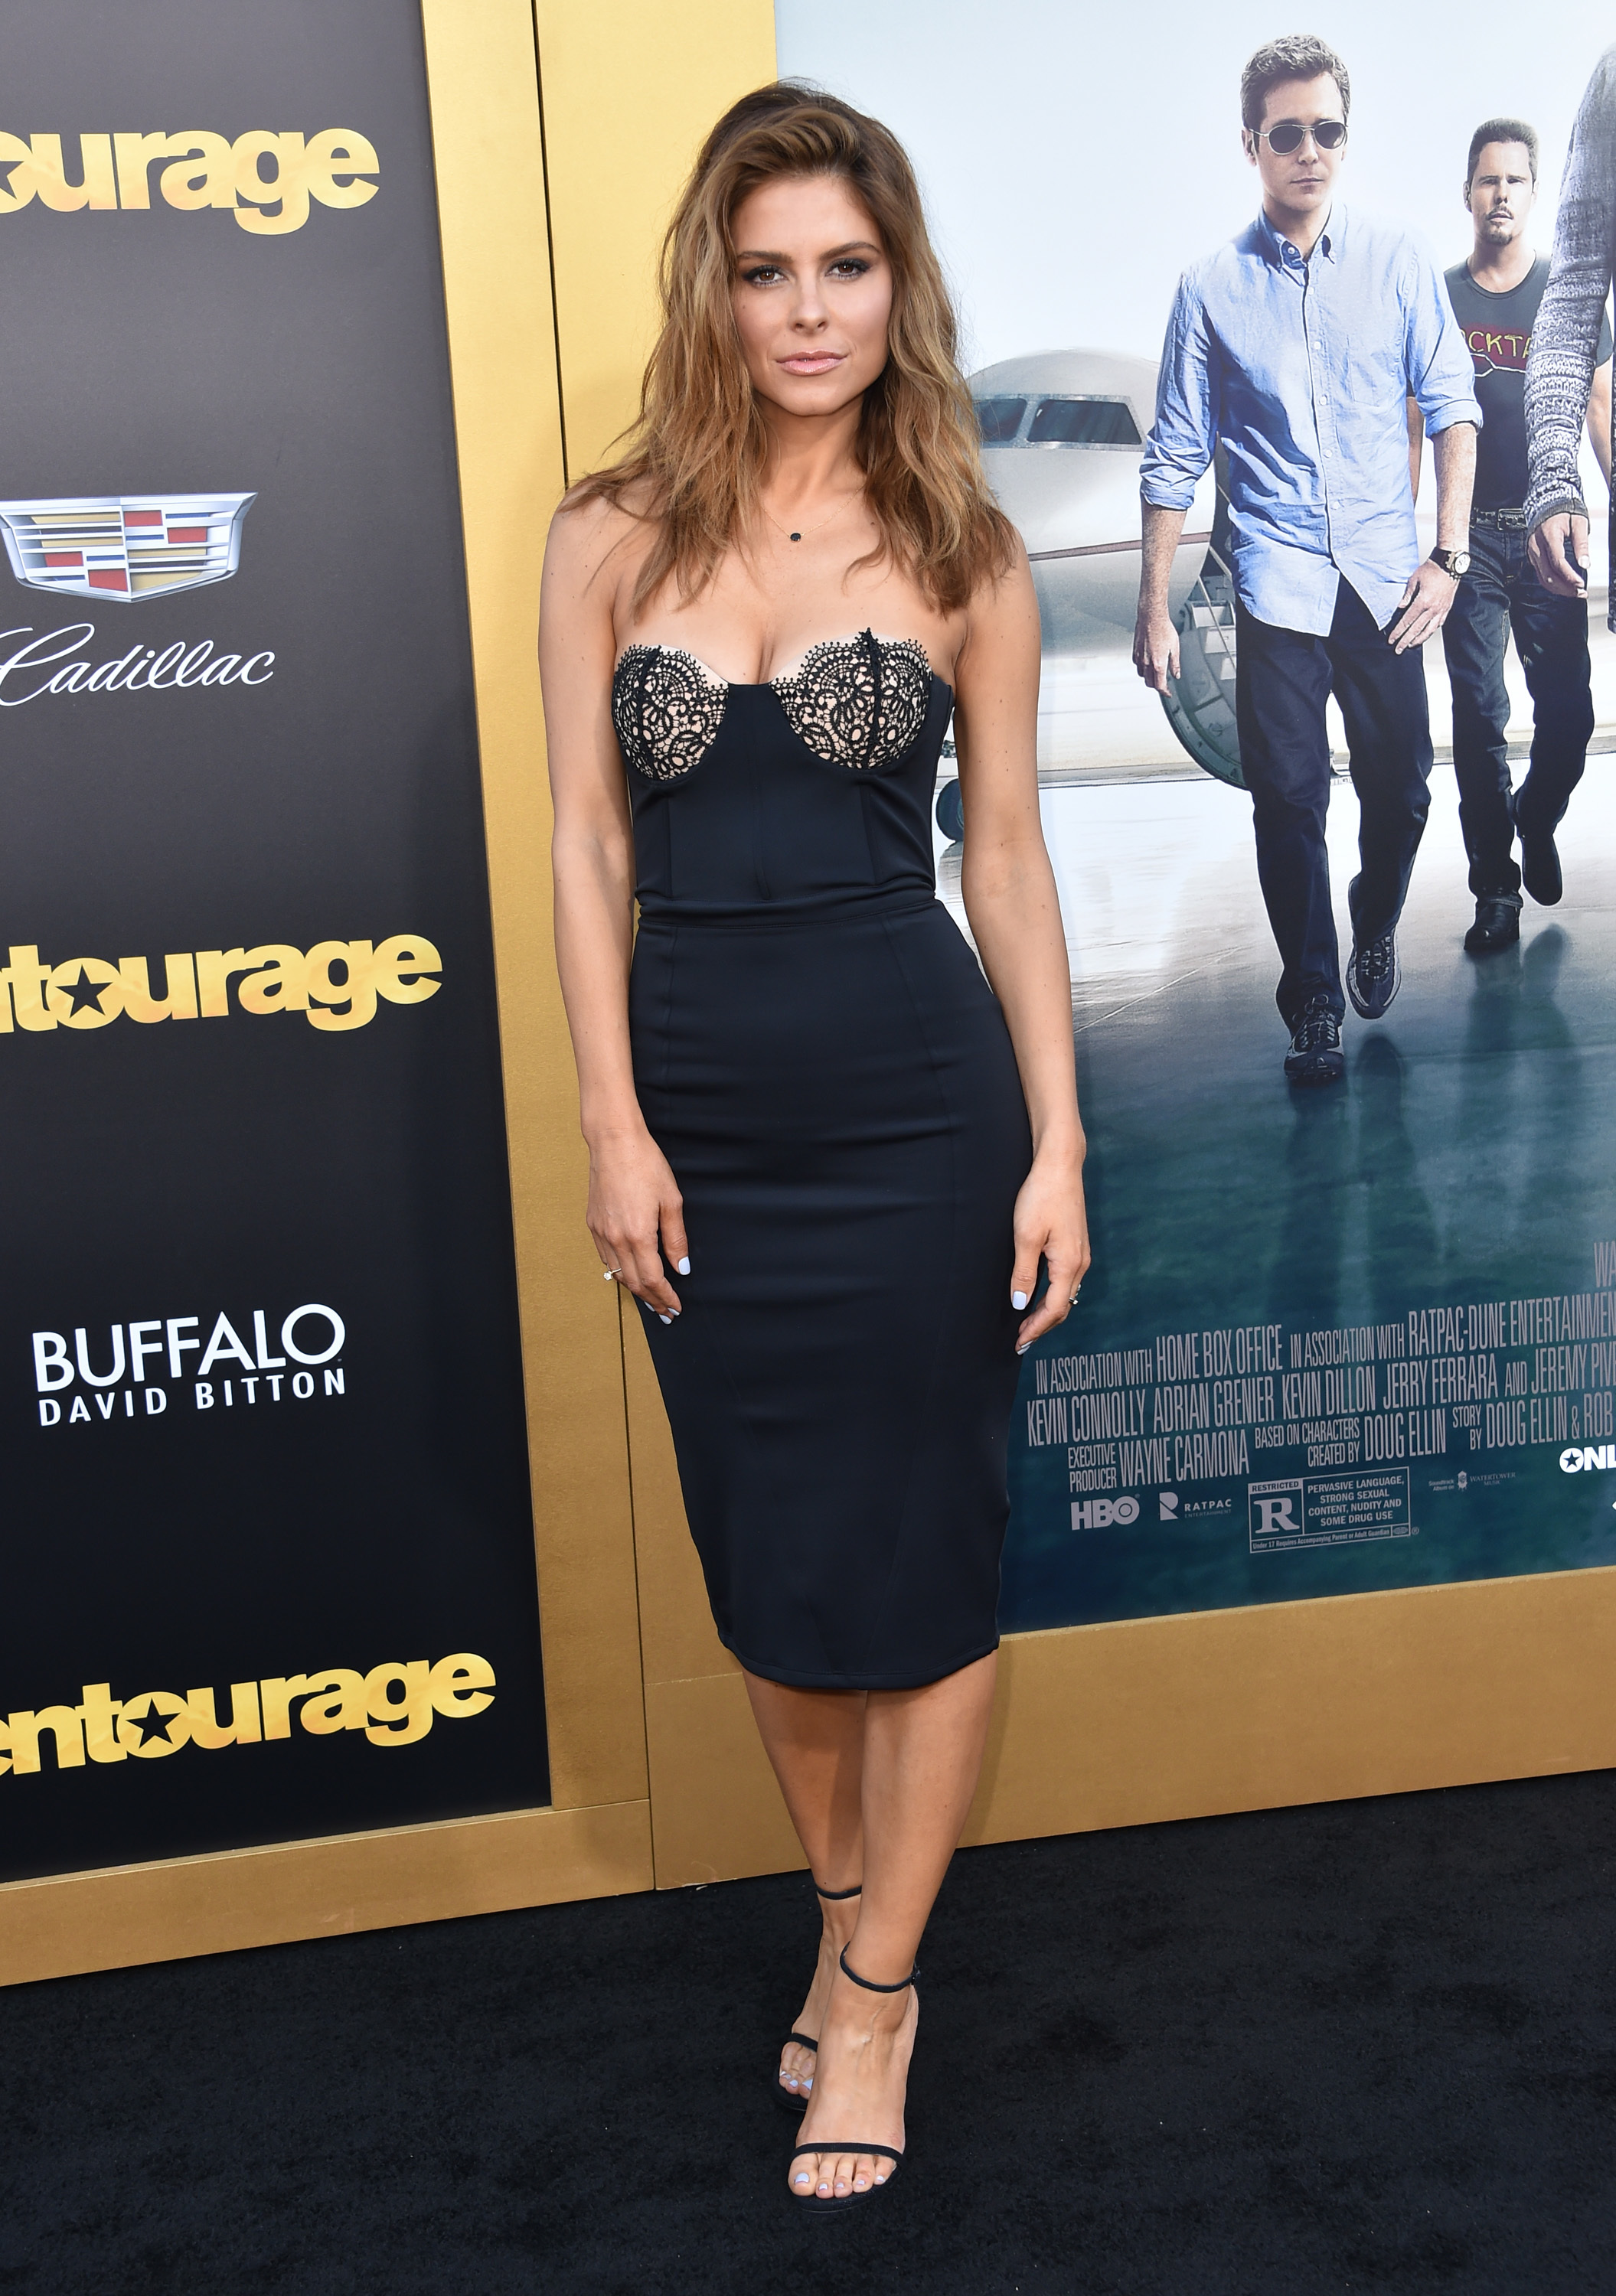 Maria Menounos on her own red carpet philosophy: